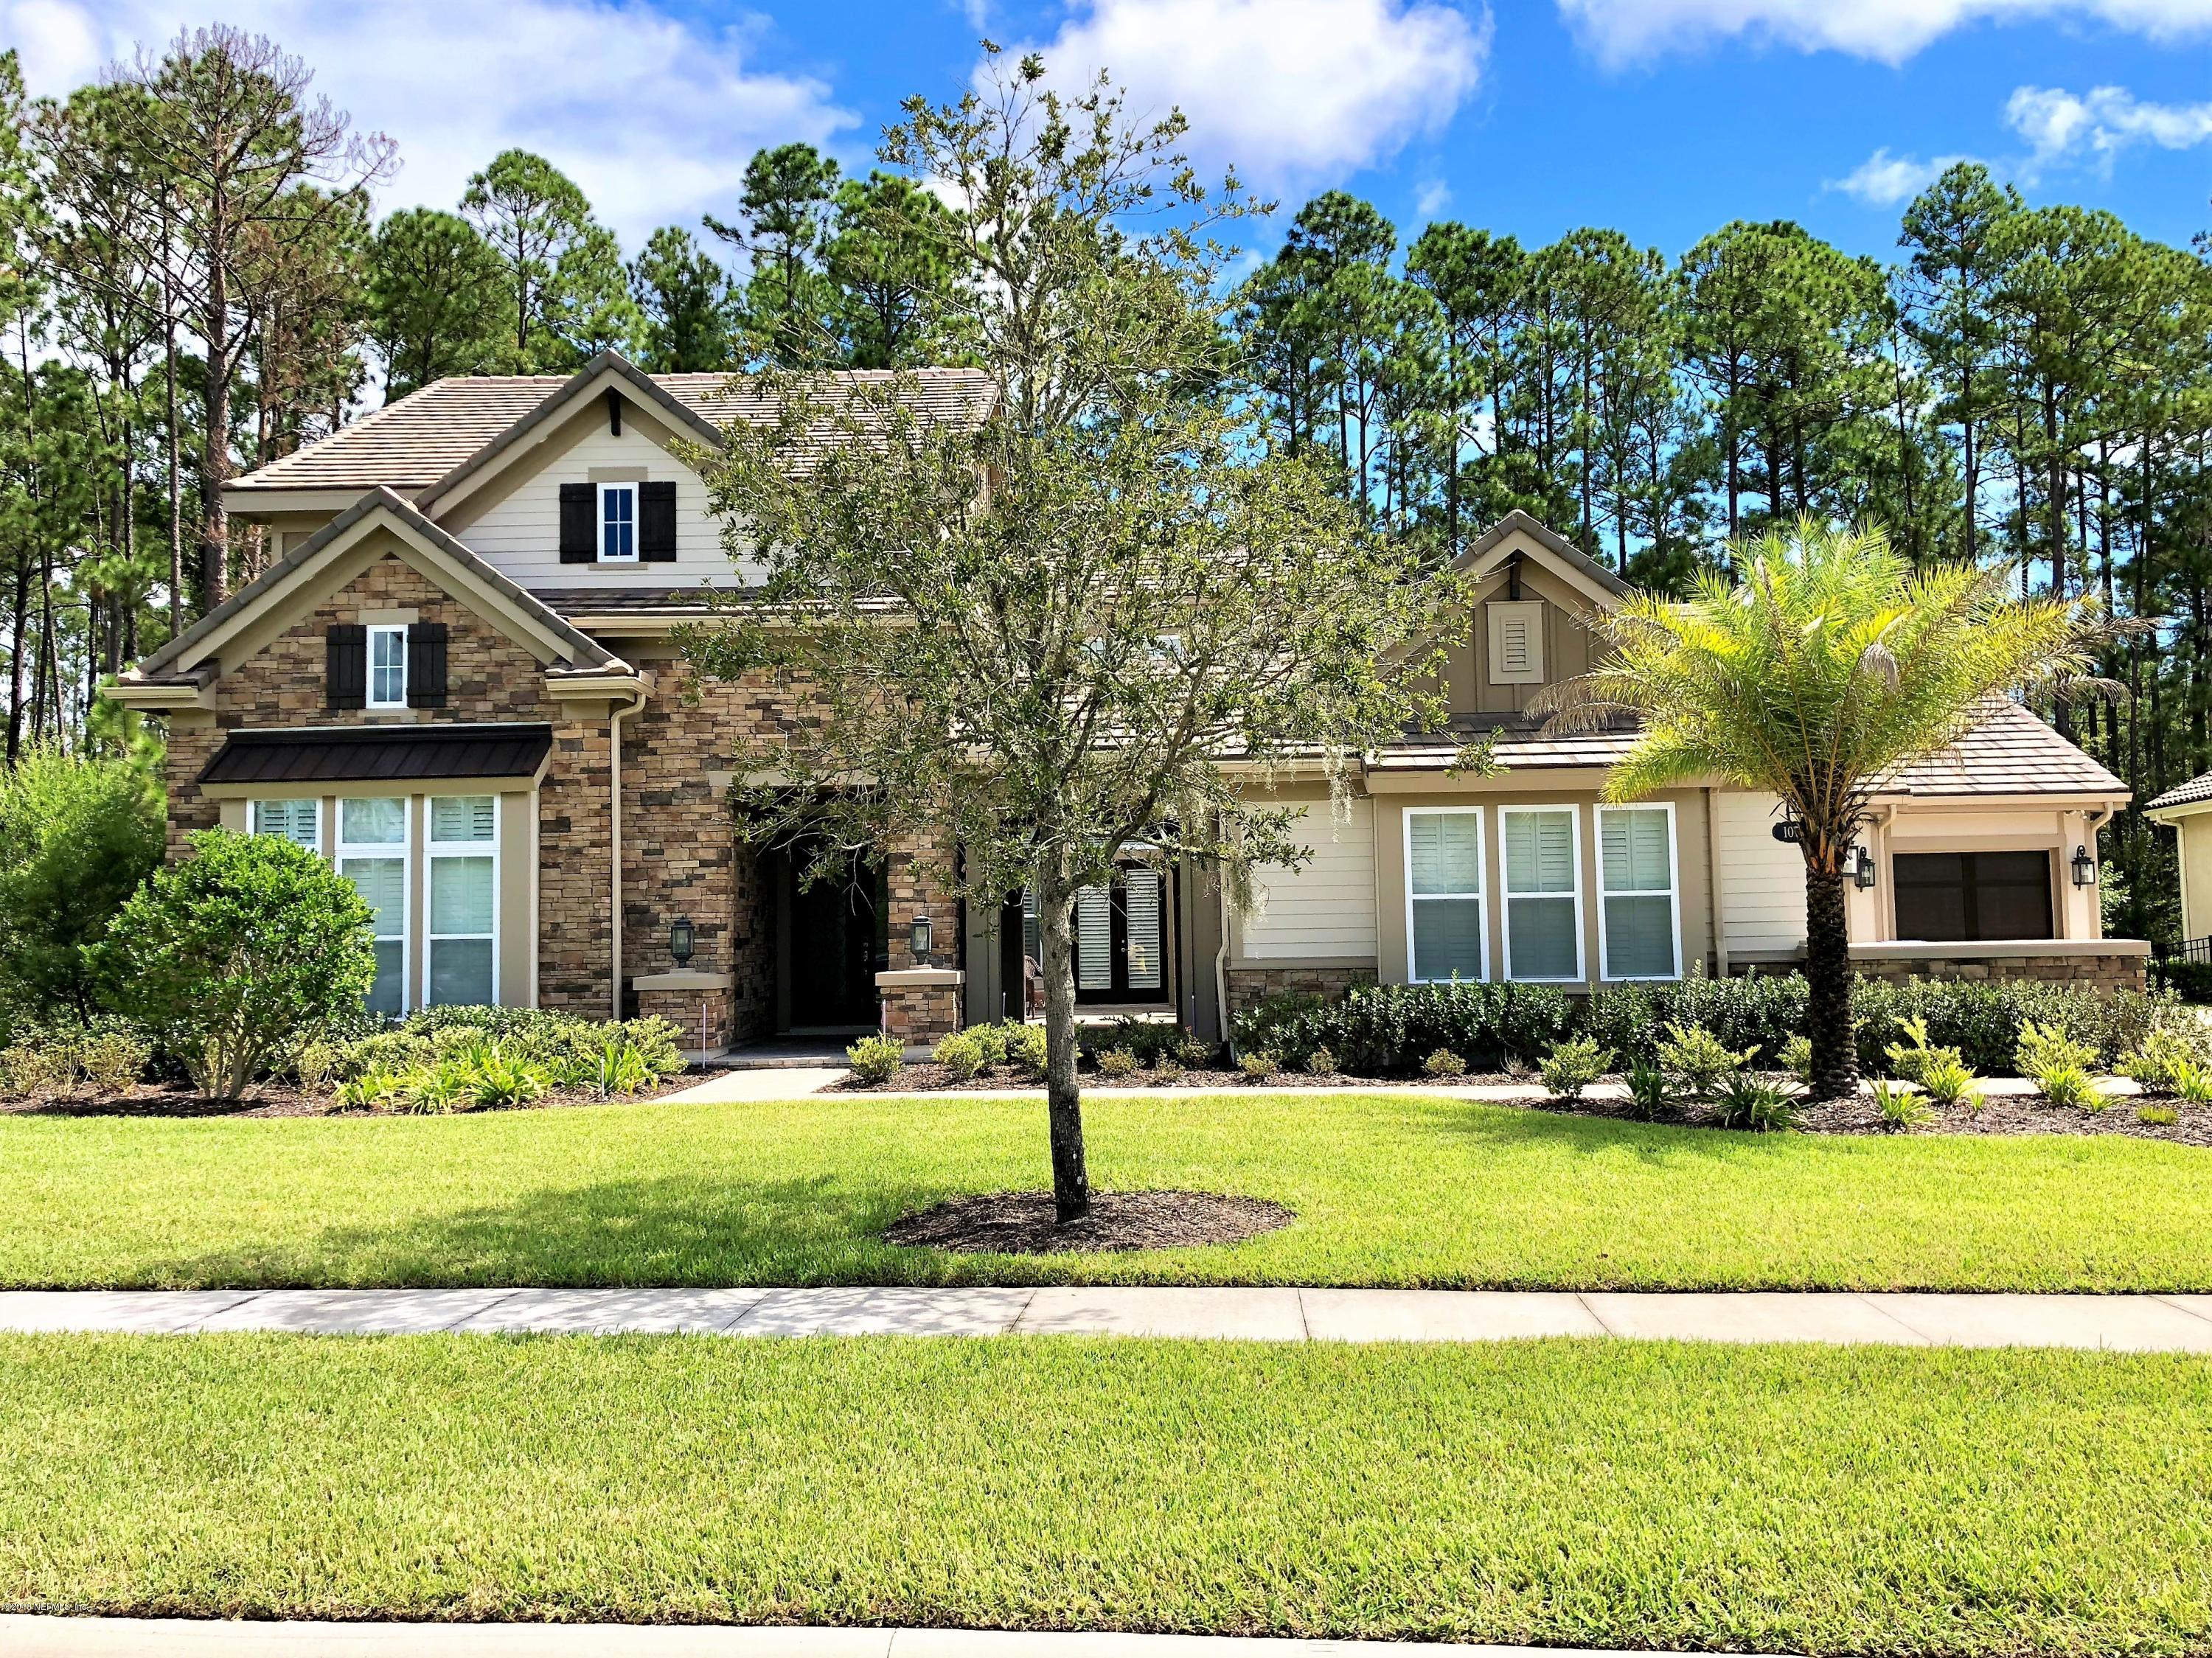 107 DEER VALLEY, PONTE VEDRA, FLORIDA 32081, 5 Bedrooms Bedrooms, ,4 BathroomsBathrooms,Residential - single family,For sale,DEER VALLEY,957311